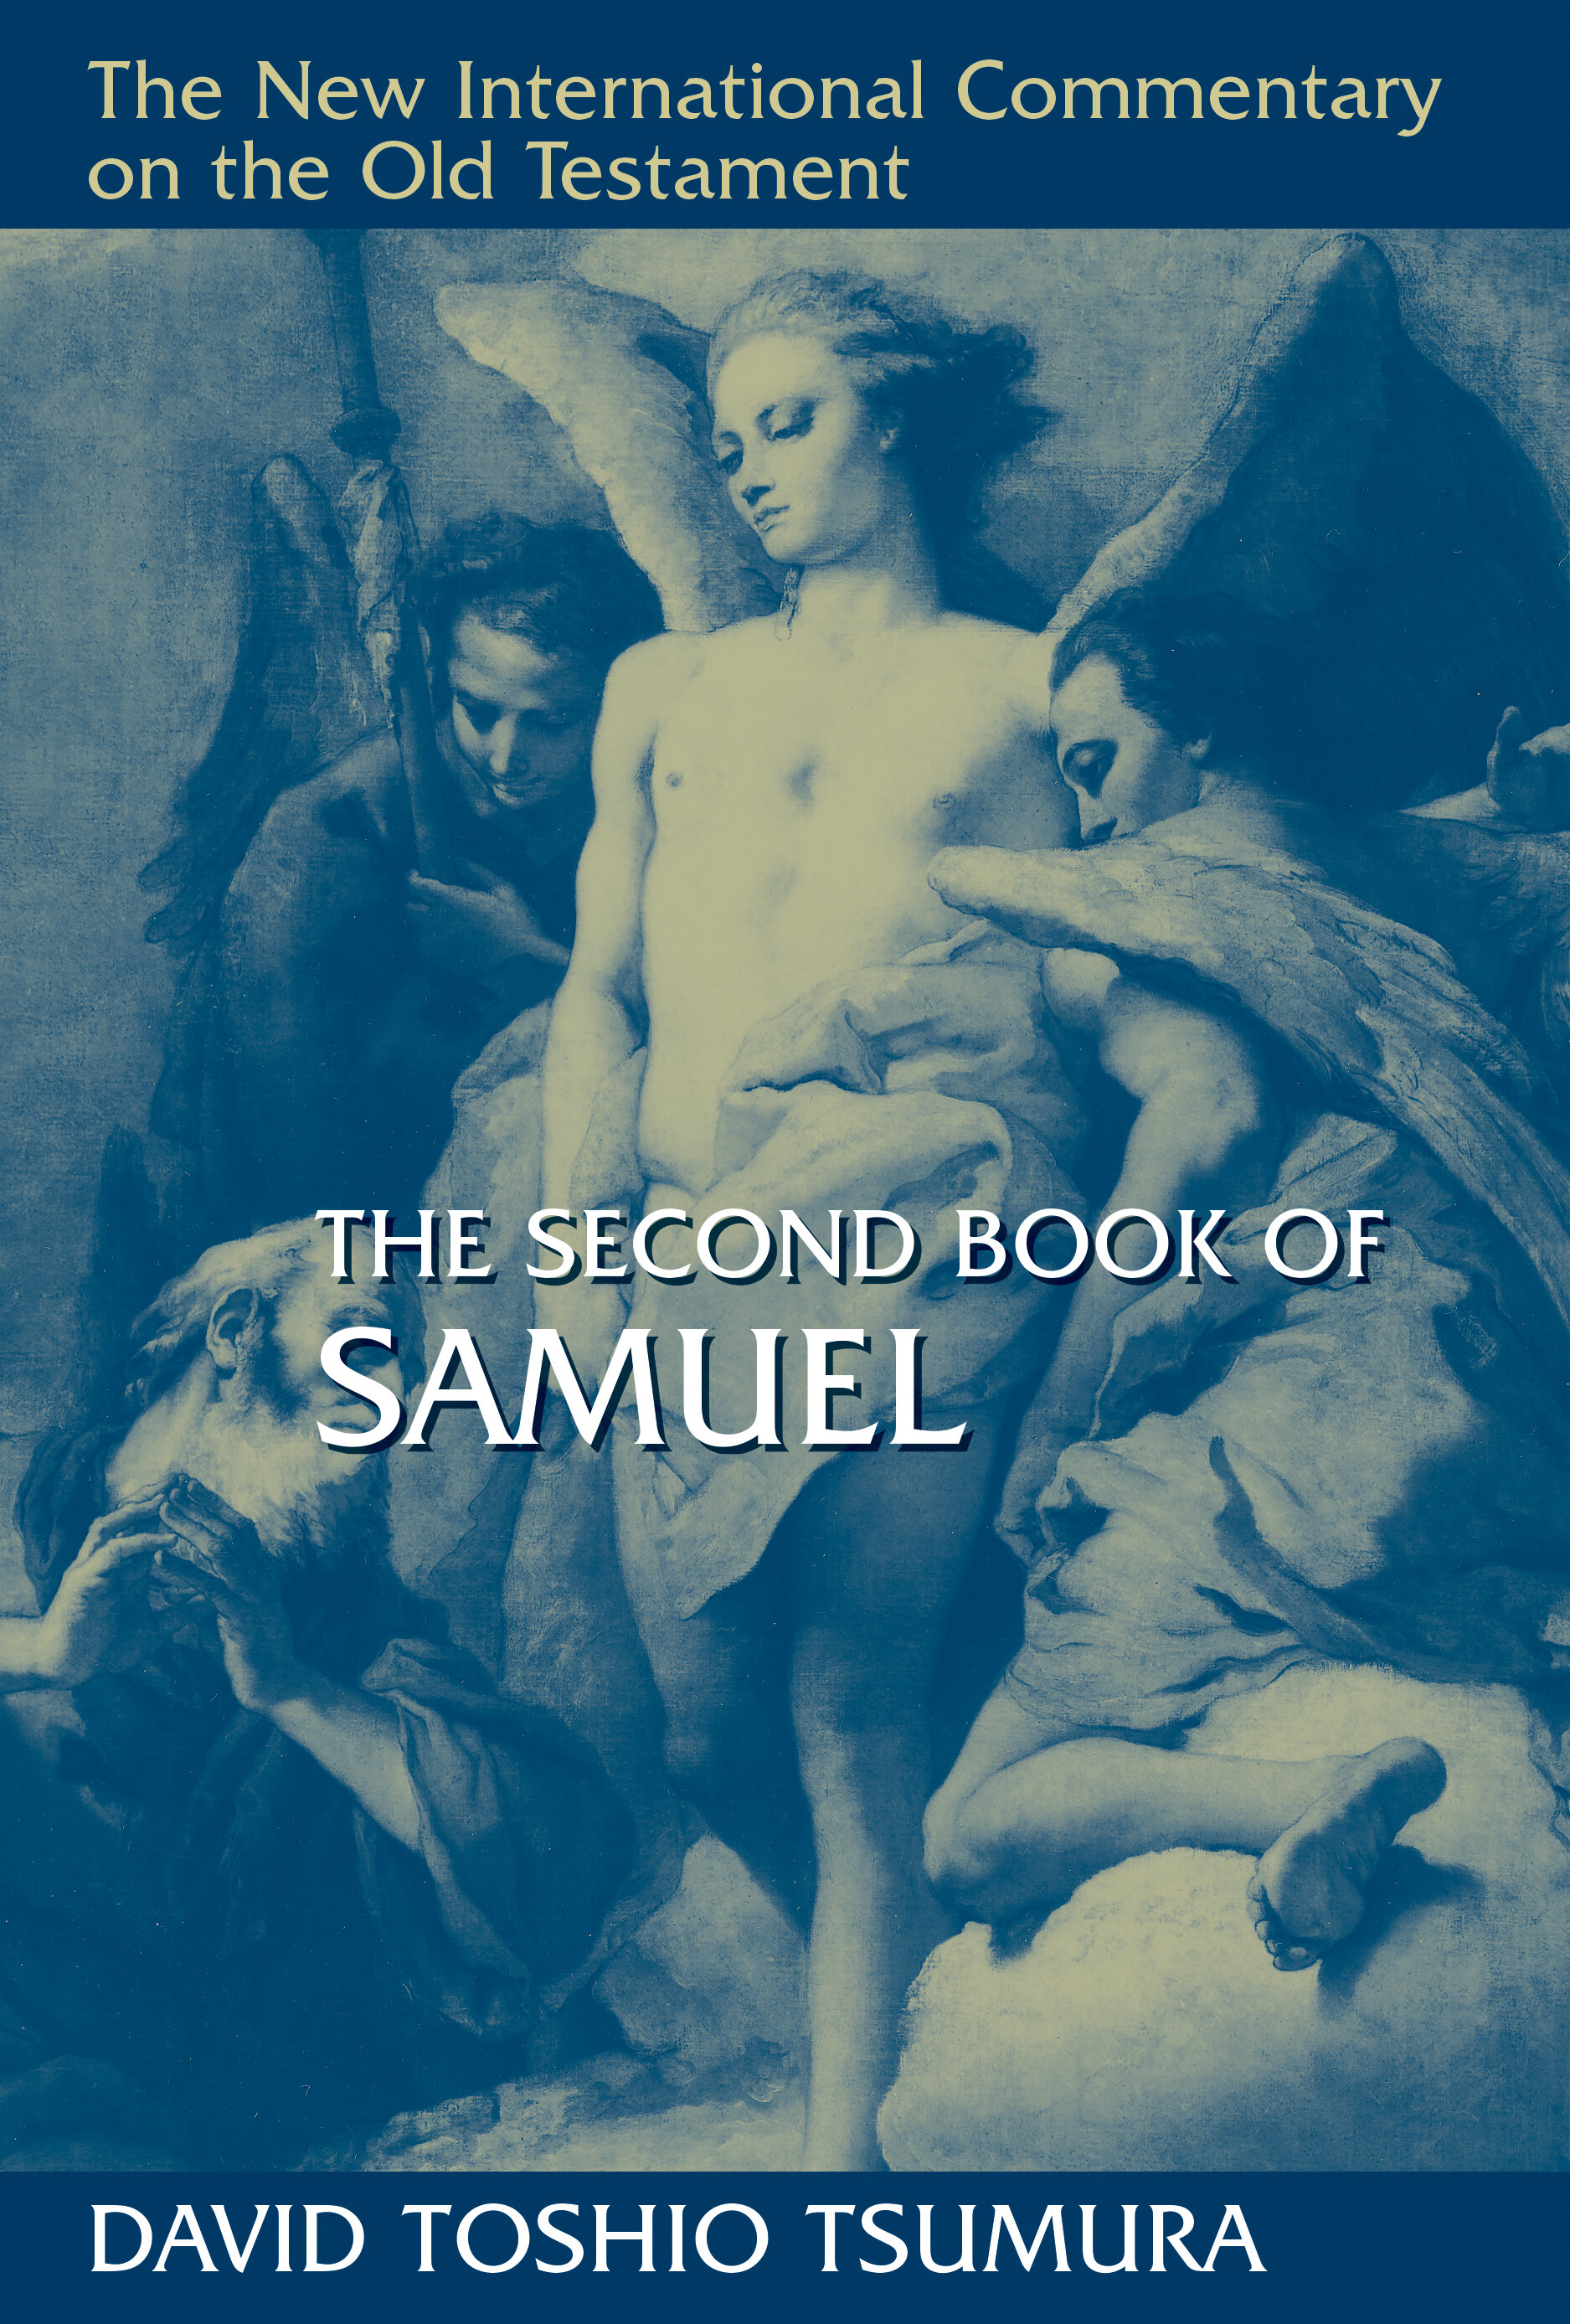 The Second Book of Samuel (The New International Commentary on the Old Testament | NICOT)